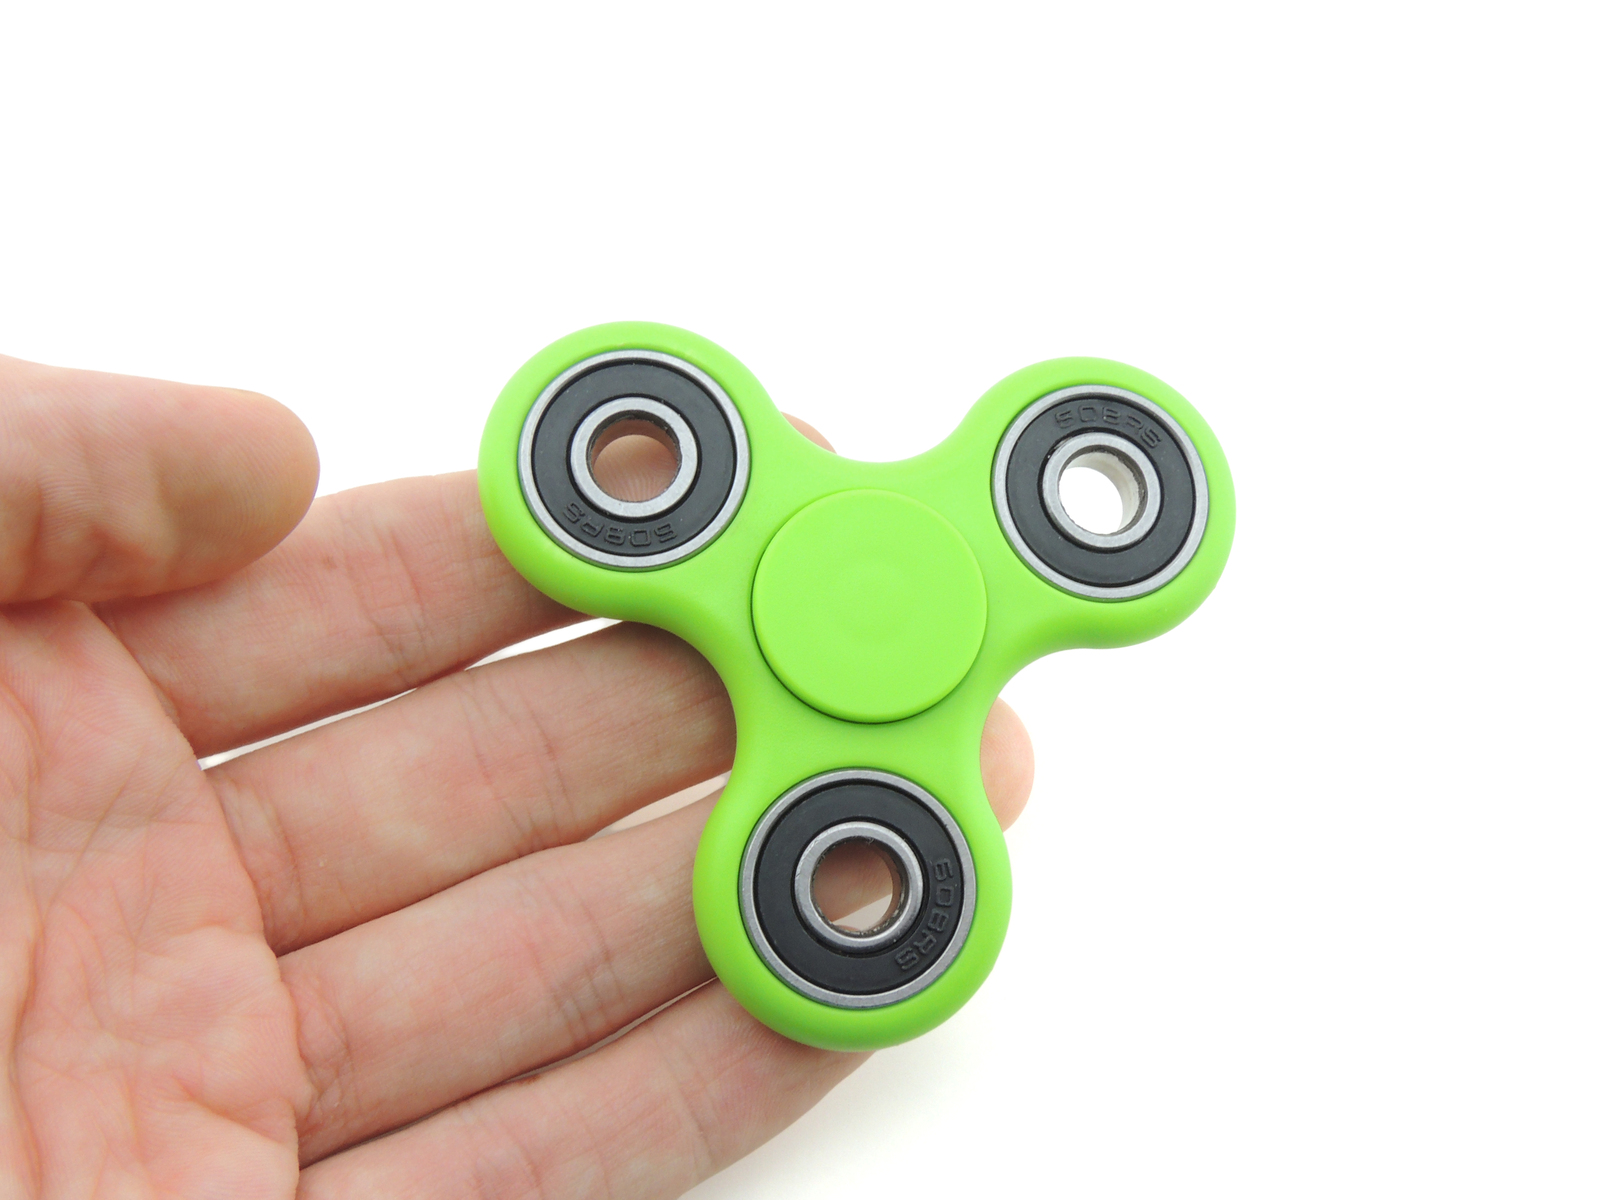 Tri fidget spinner edc finger hand spinner focus anxiety stress relief desk toy green in hand